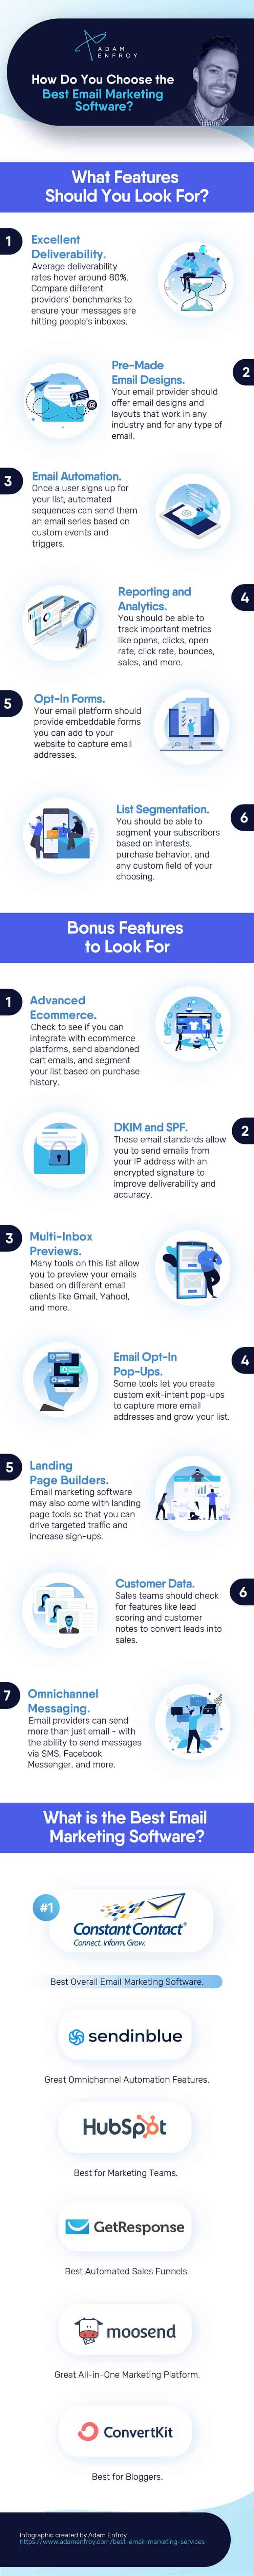 How to Choose the Best Email Marketing Software Infographic